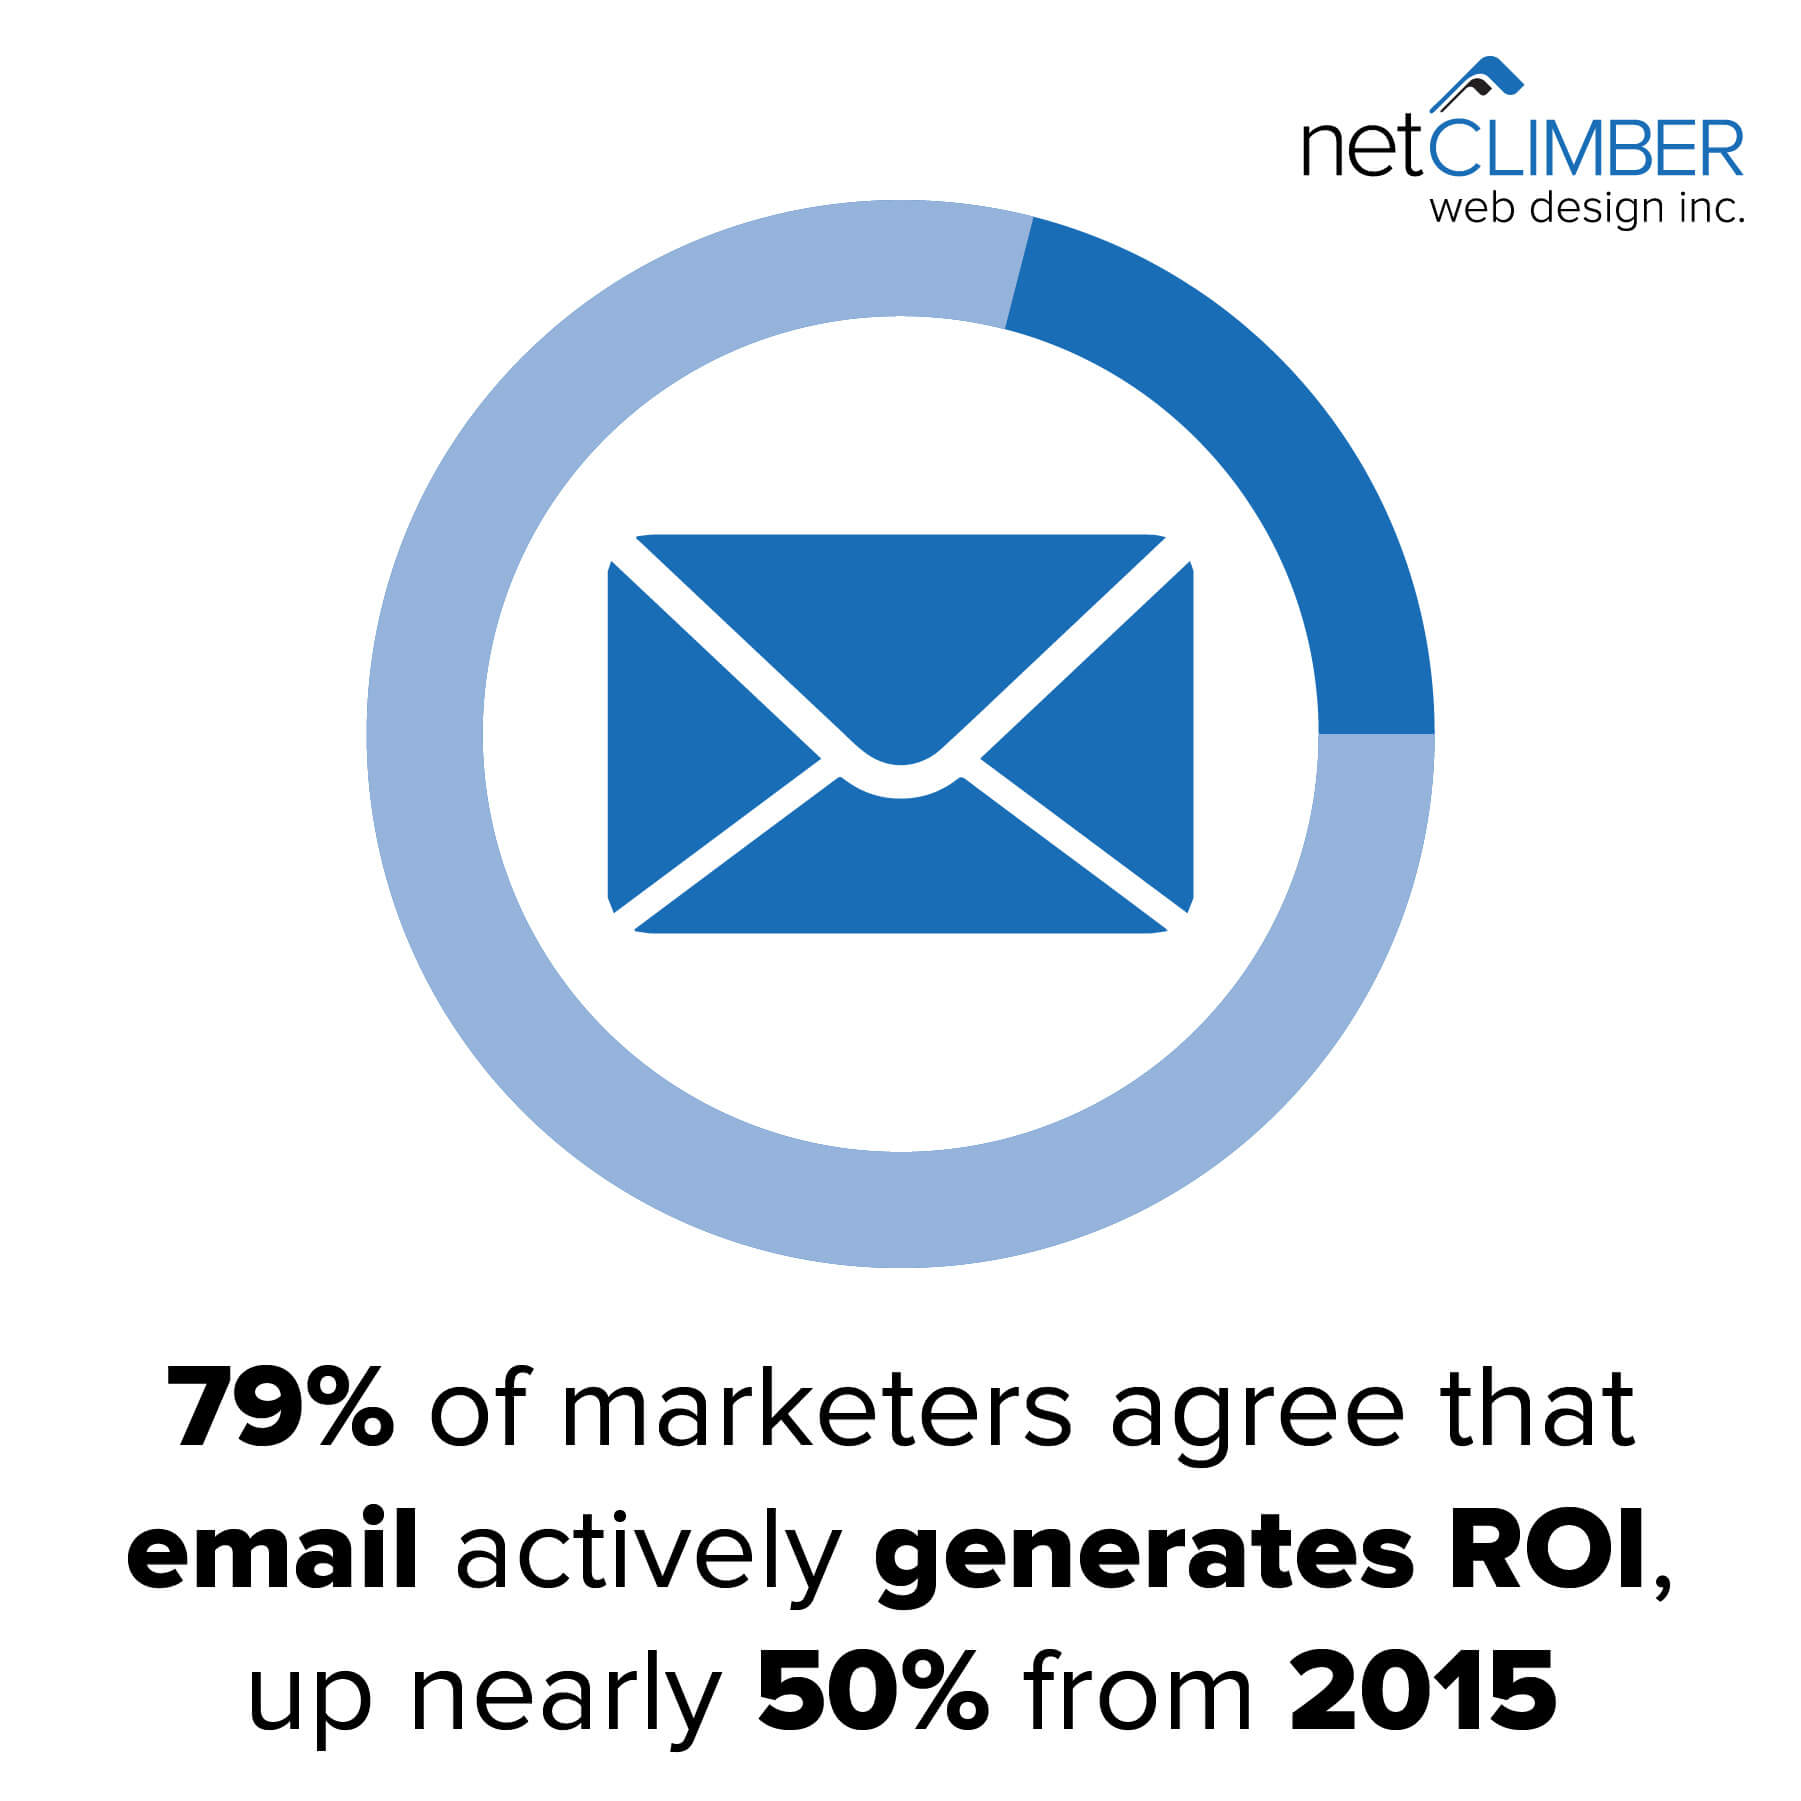 79% of marketeres believe email actively generates ROI